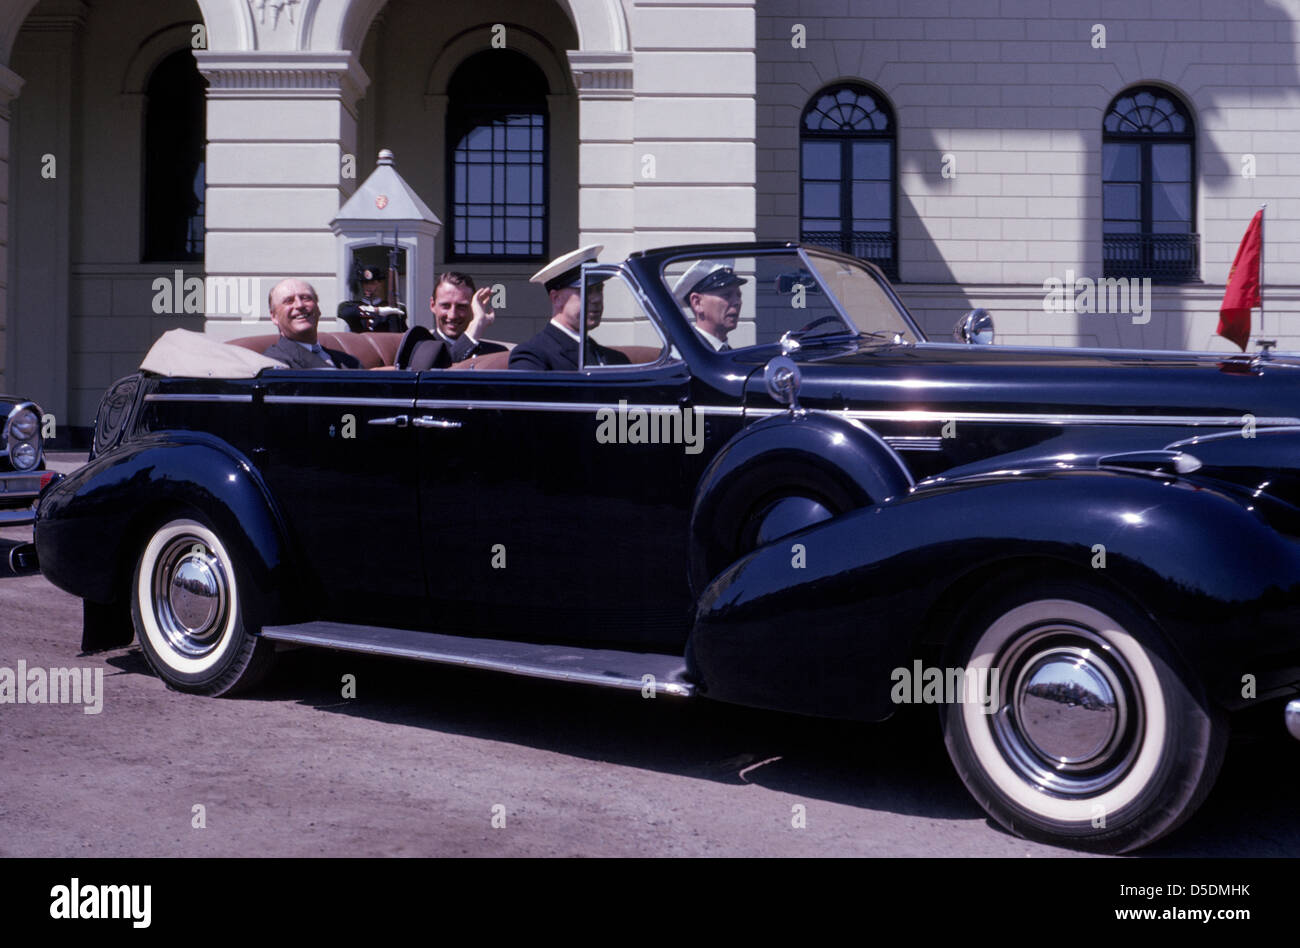 On his birthday in 1963, the King of Norway, Olav V, and his only son, Crown Prince Harald, ride in the open royal Stock Photo